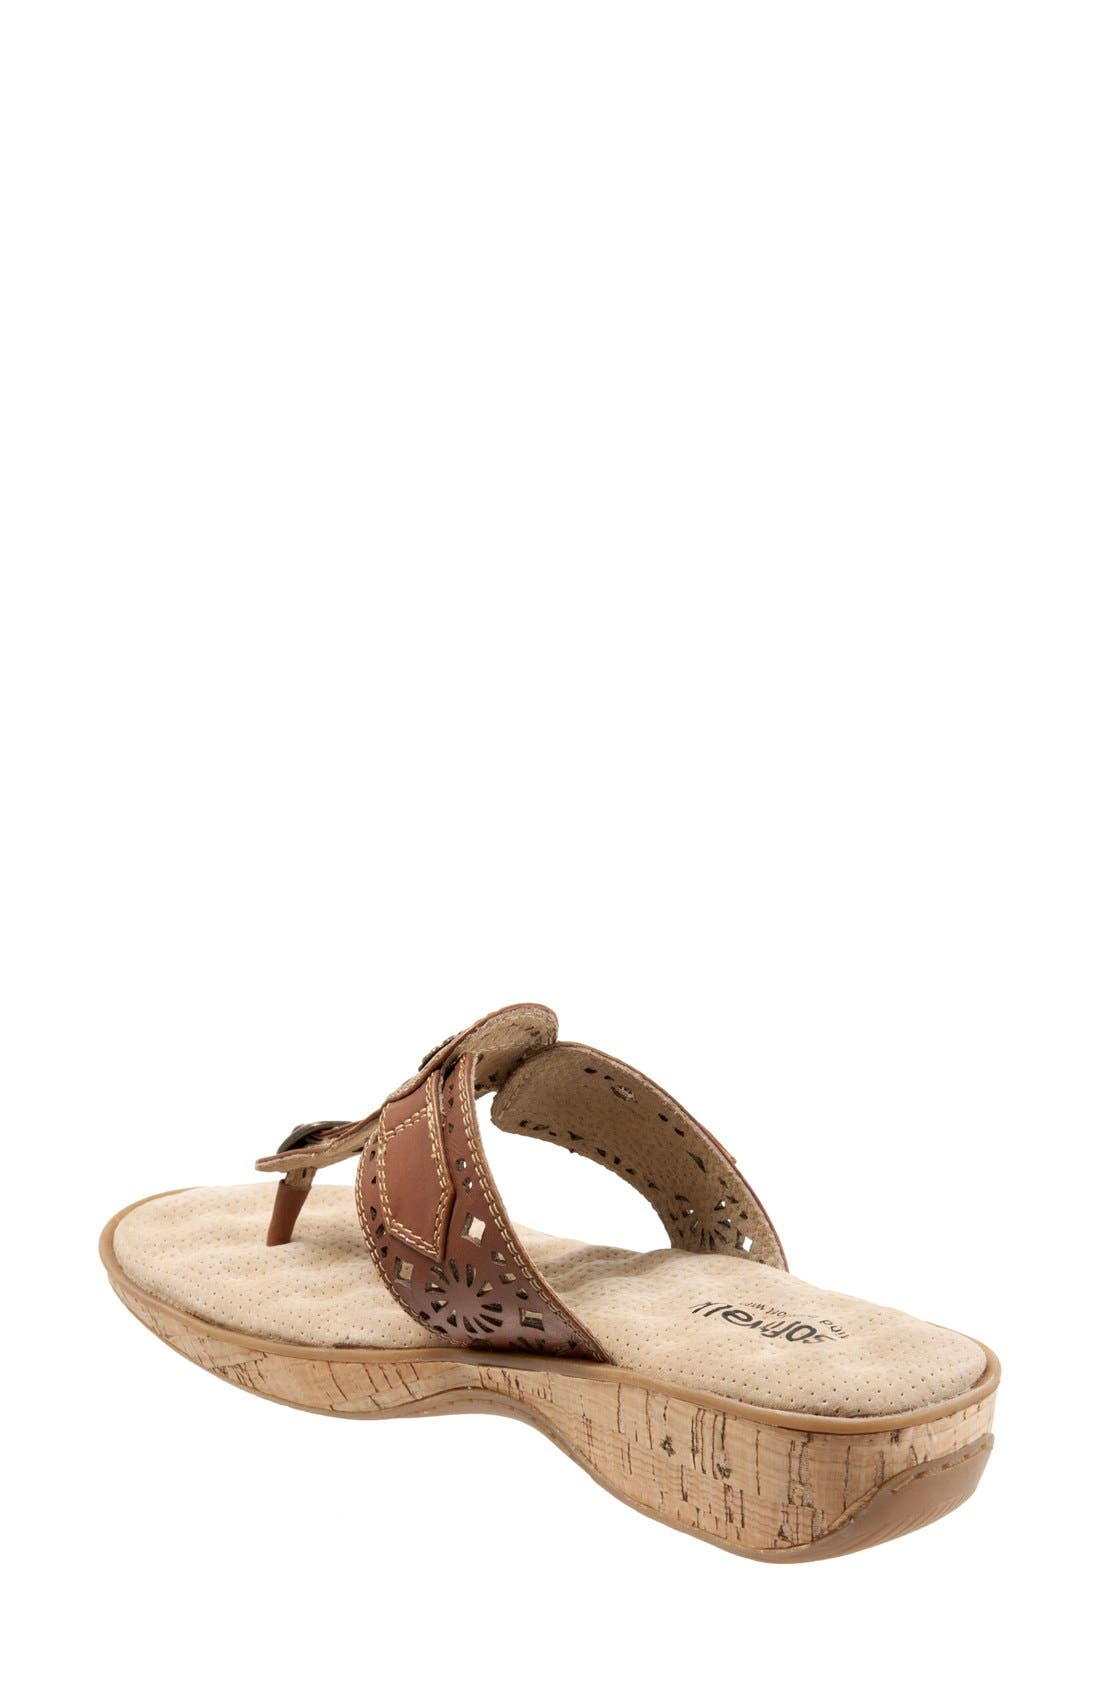 'Beaumont' Sandal,                             Alternate thumbnail 22, color,